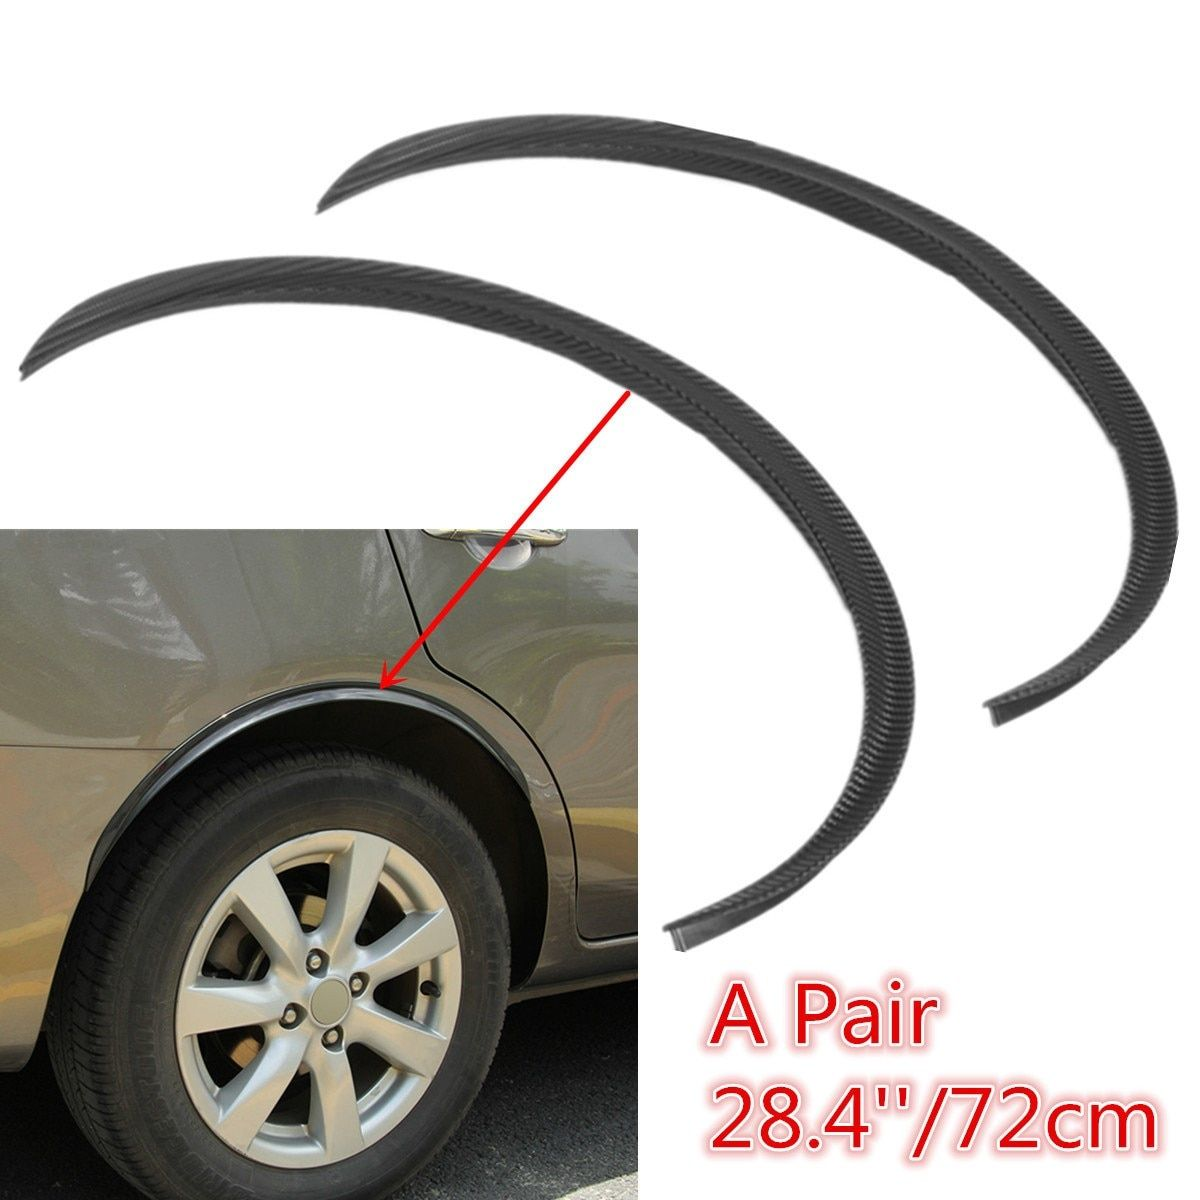 2Pcs/pair Universal Black Car Carbon Fiber Large Round Arc Strip Protector Wheel Eyebrow Decal Sticker For Fender